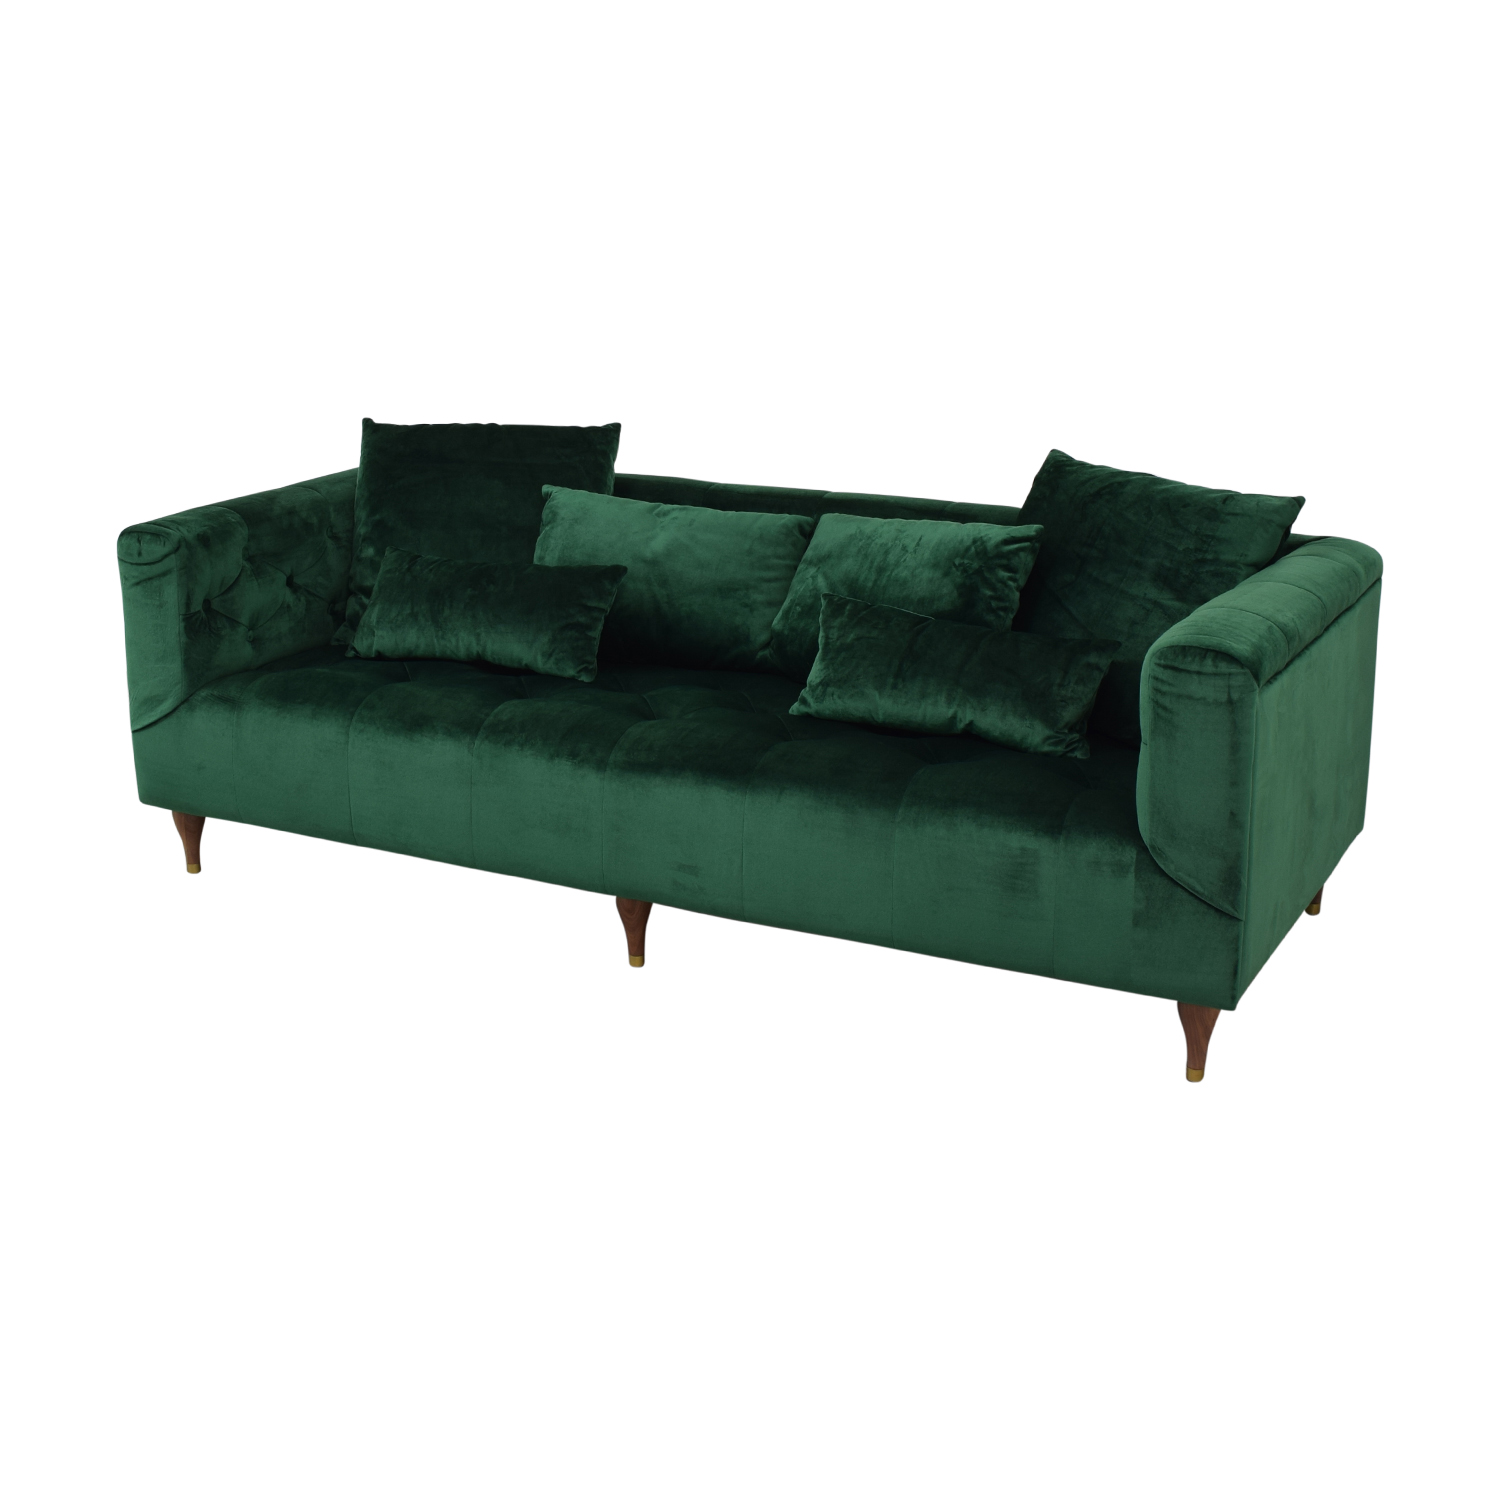 buy Interior Define Ms. Chesterfield Green Tufted Sofa online